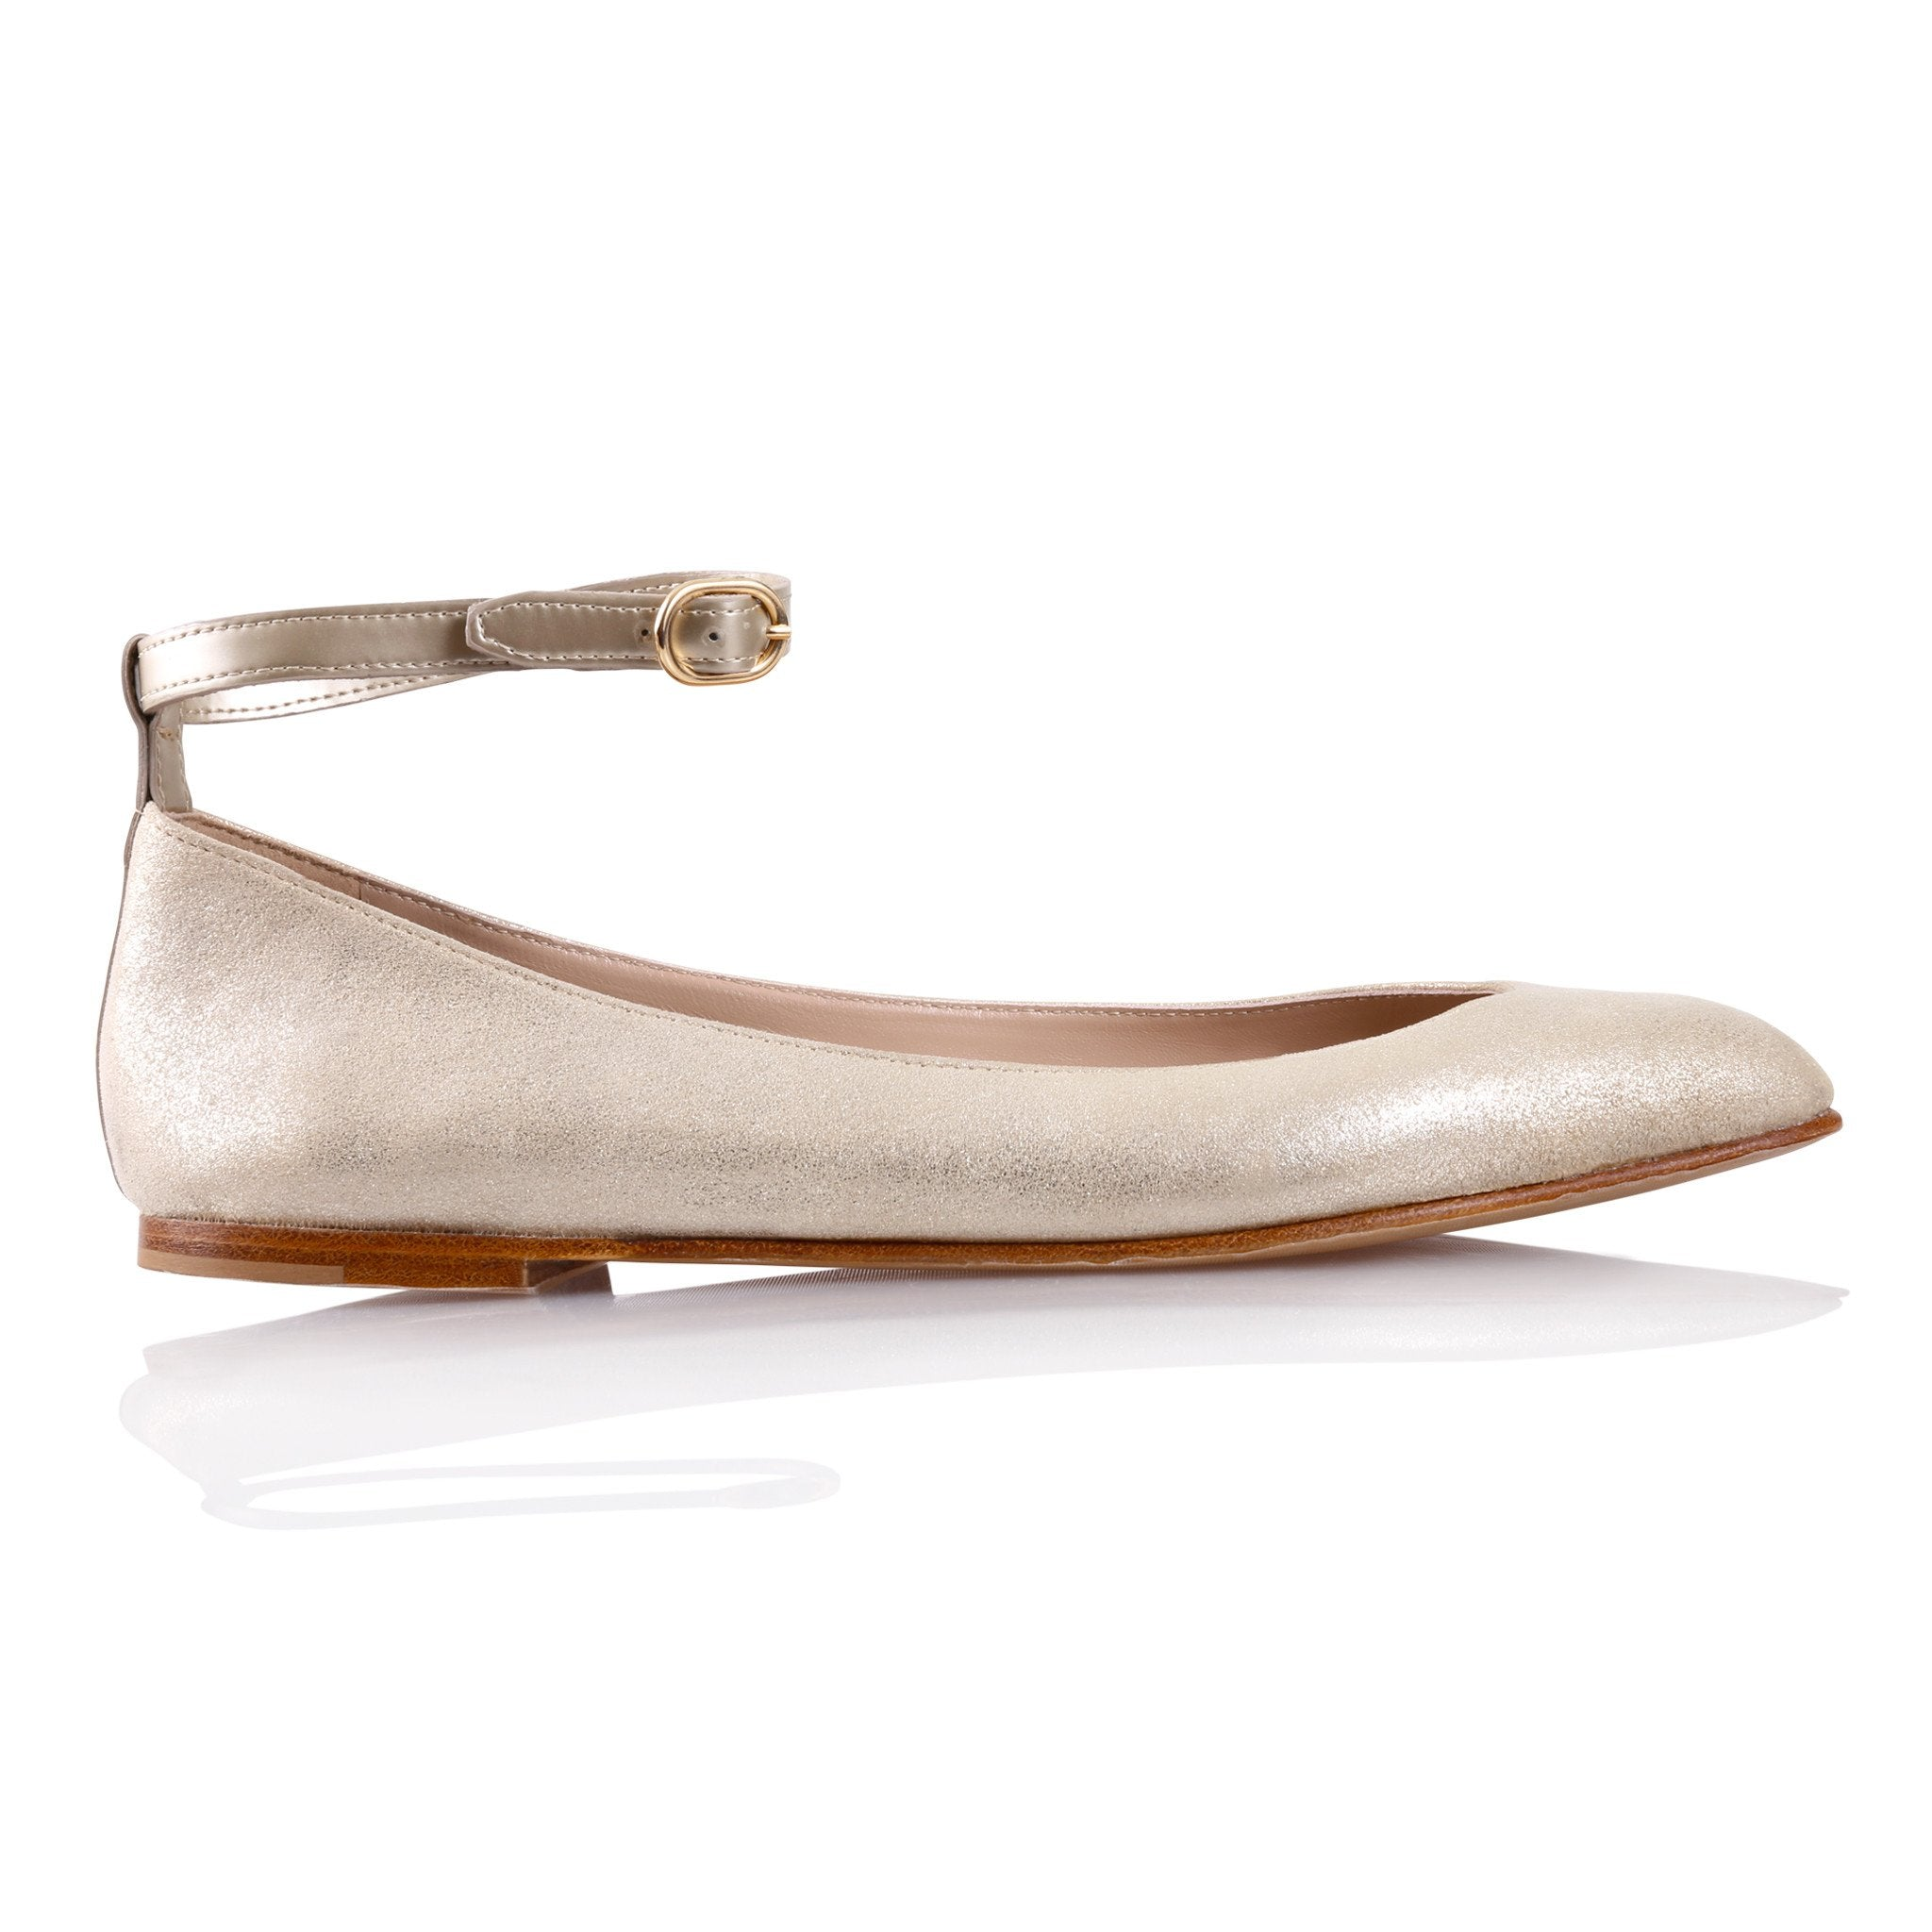 TORINO - Burma Platino + Gold, VIAJIYU - Women's Hand Made Sustainable Luxury Shoes. Made in Italy. Made to Order.